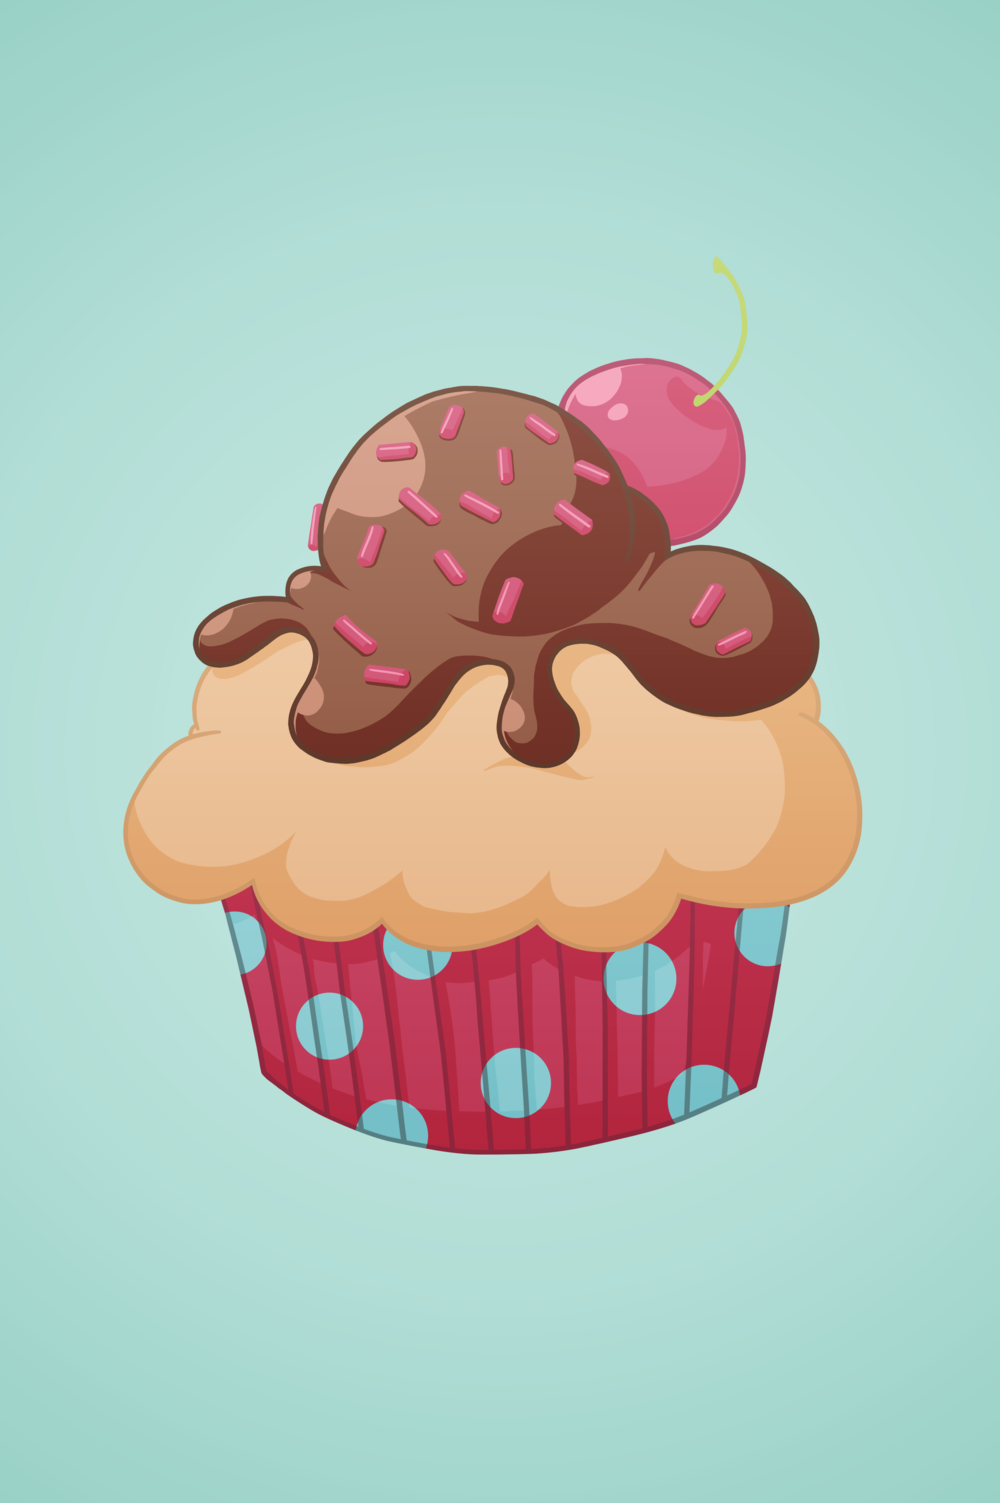 cupcake03Colour.png